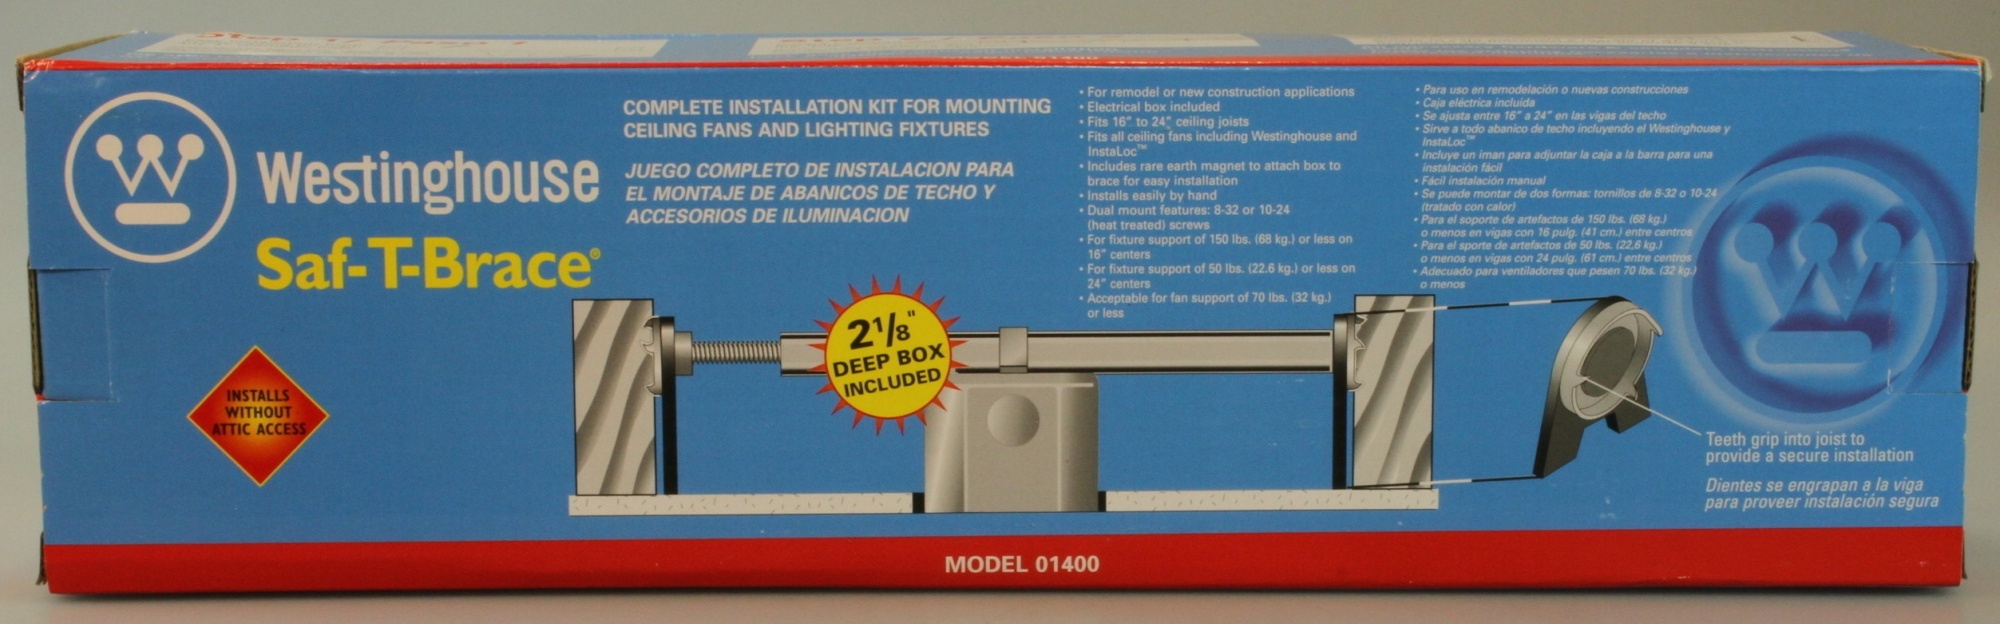 Install Ceiling Fan Box Without Attic Access - Ceiling Fans Ideas